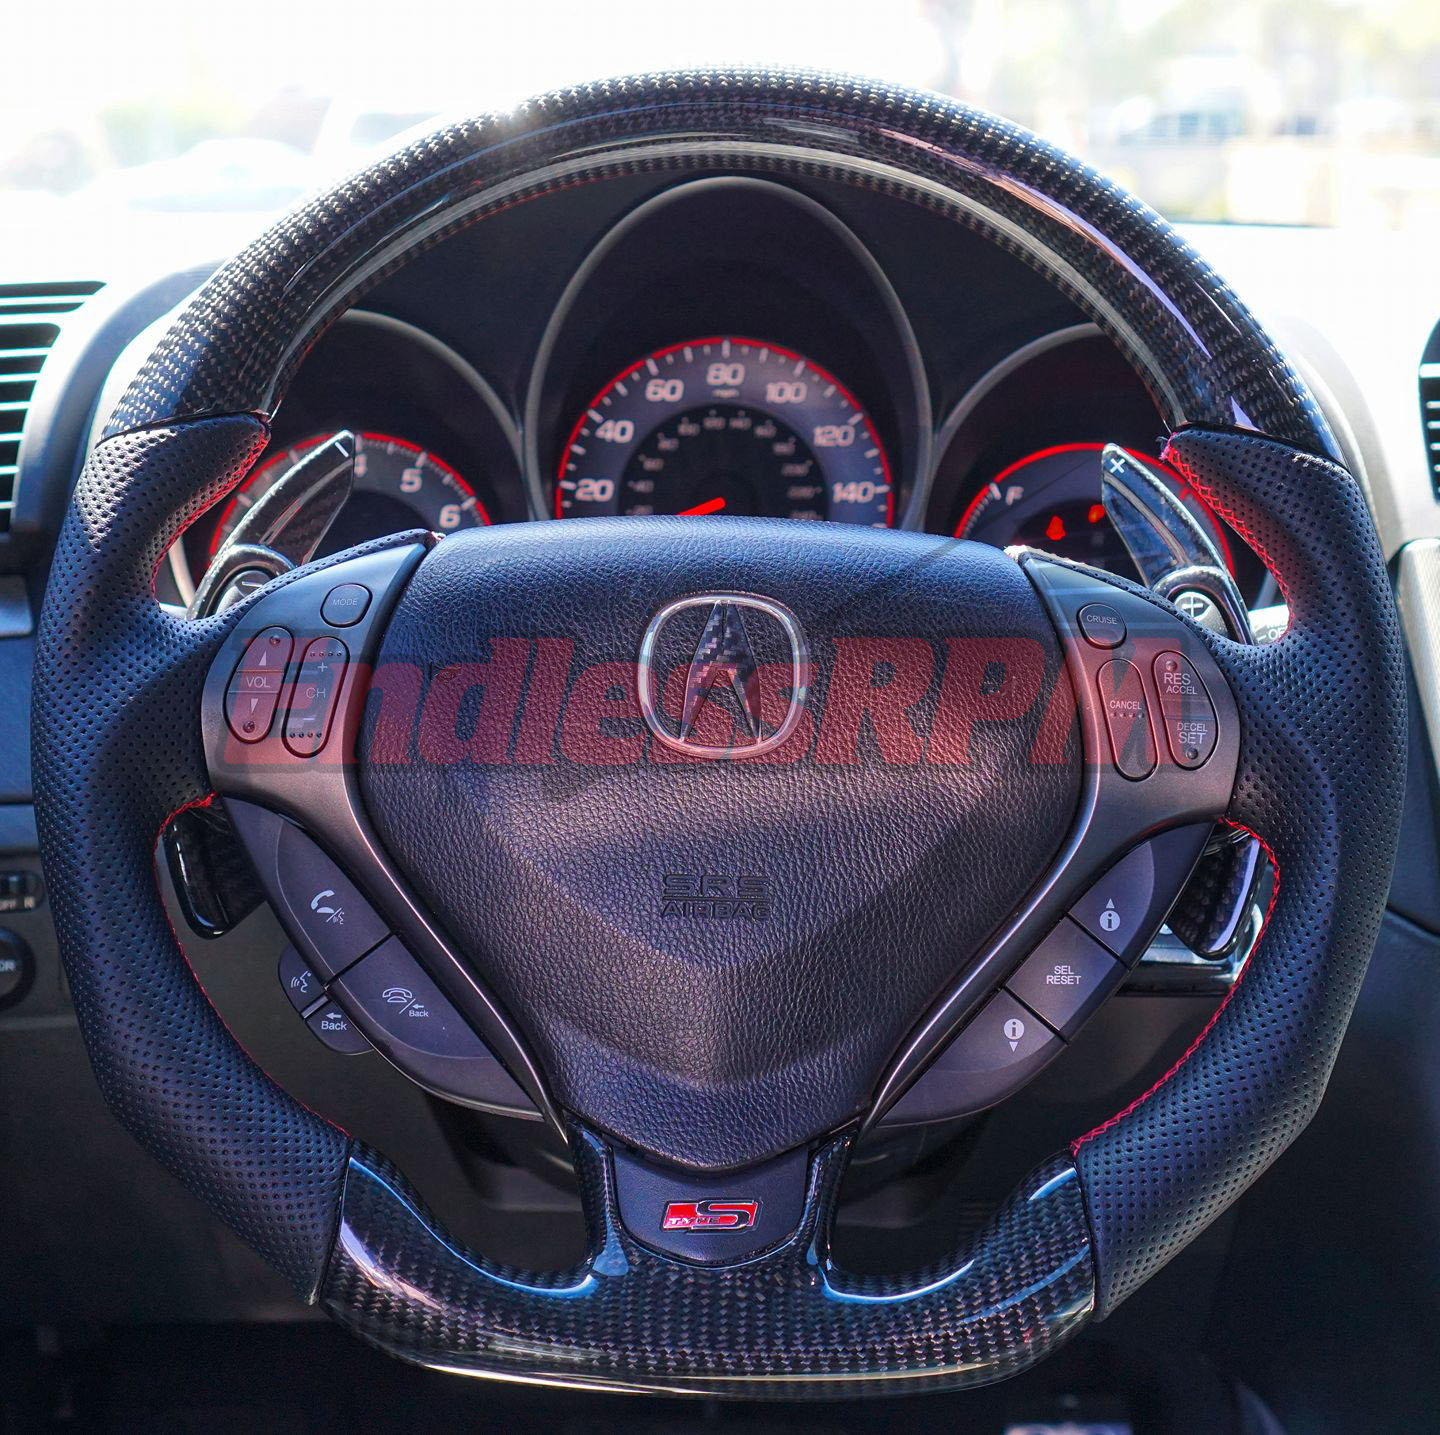 07-08 TYPE-S ONLY! Paddle Shifters